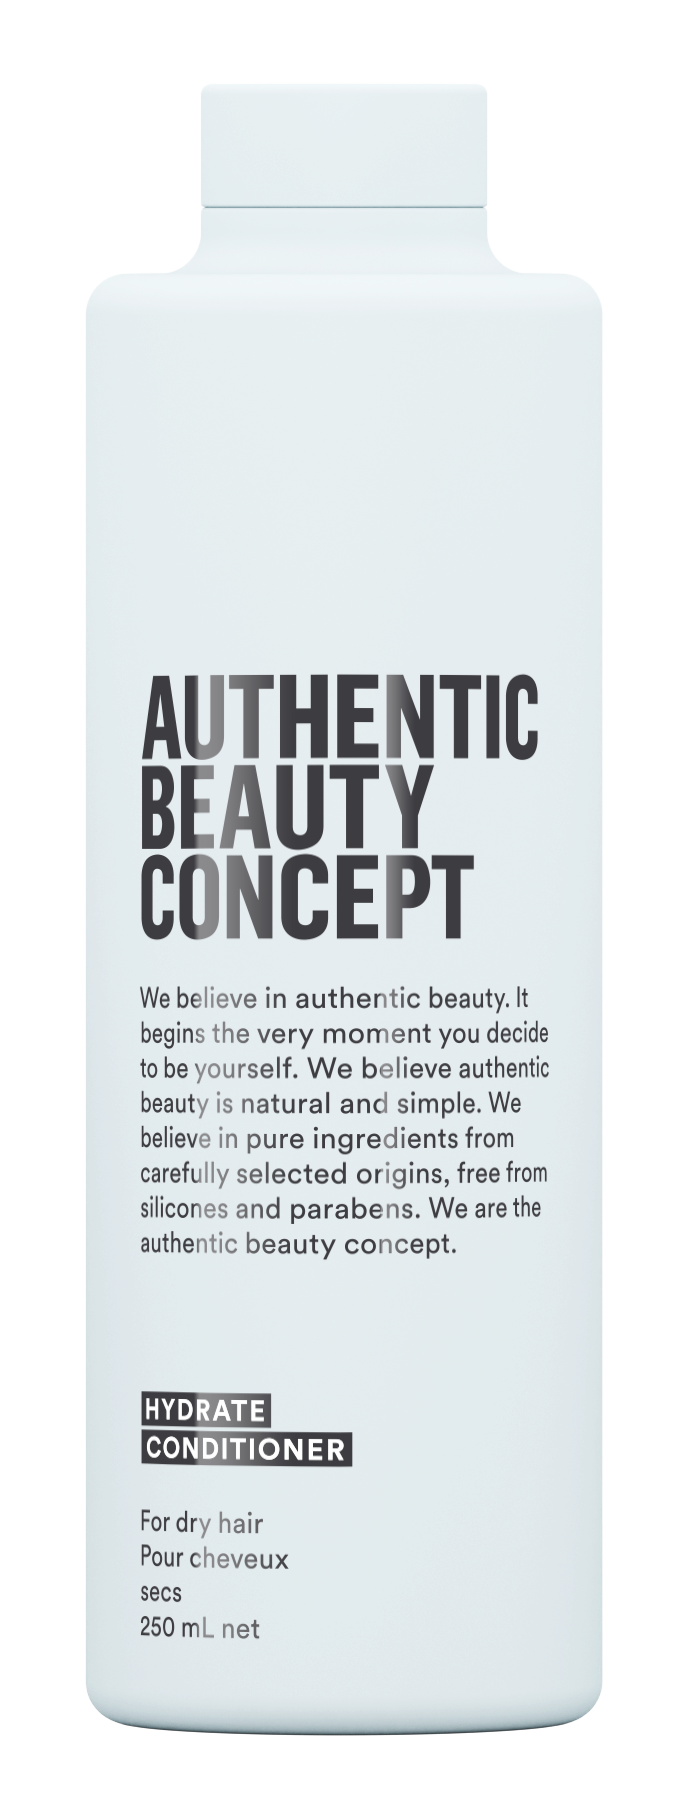 Authentic Beauty Concept - Hydrate Conditioner 250ml